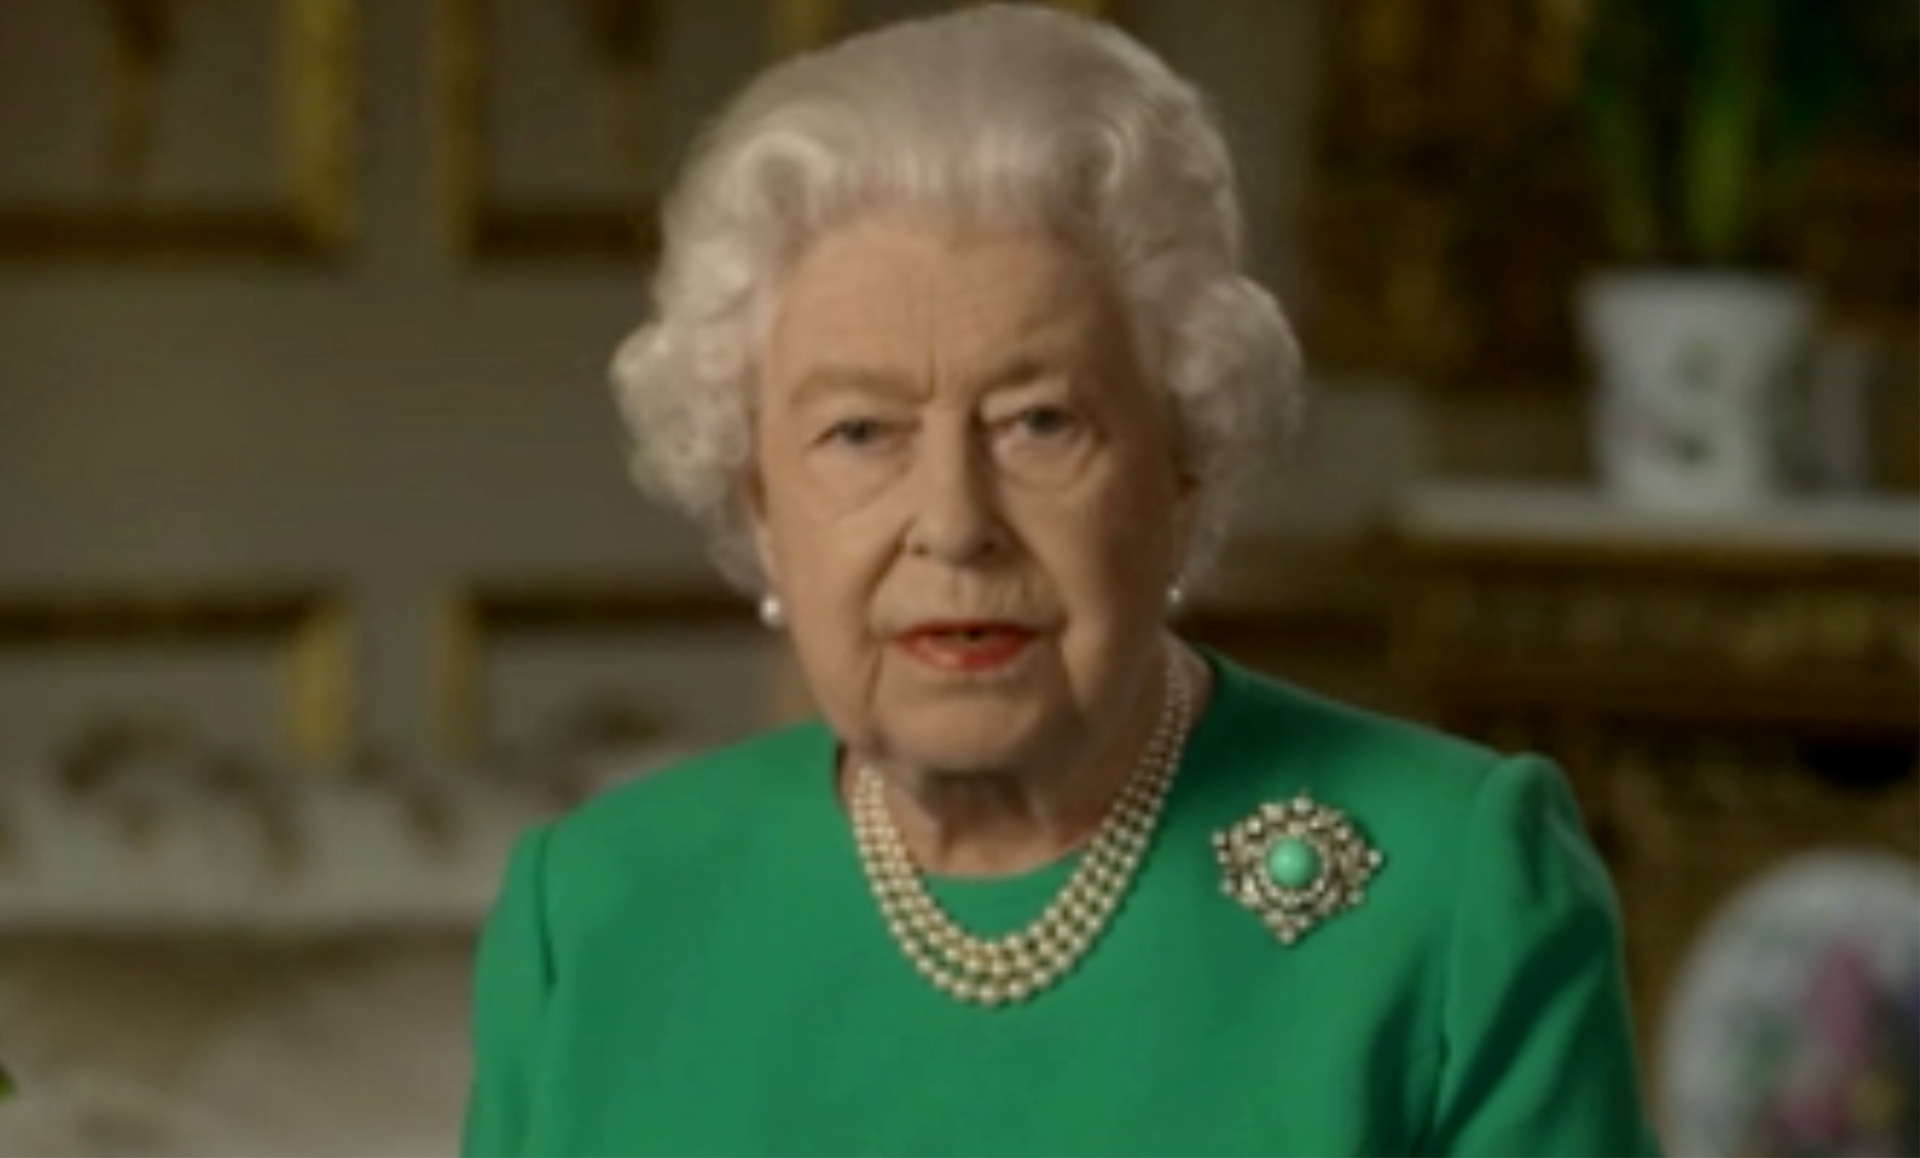 Queen Elizabeth delivers an address to the nation amid the coronavirus pandemic. (CNN)